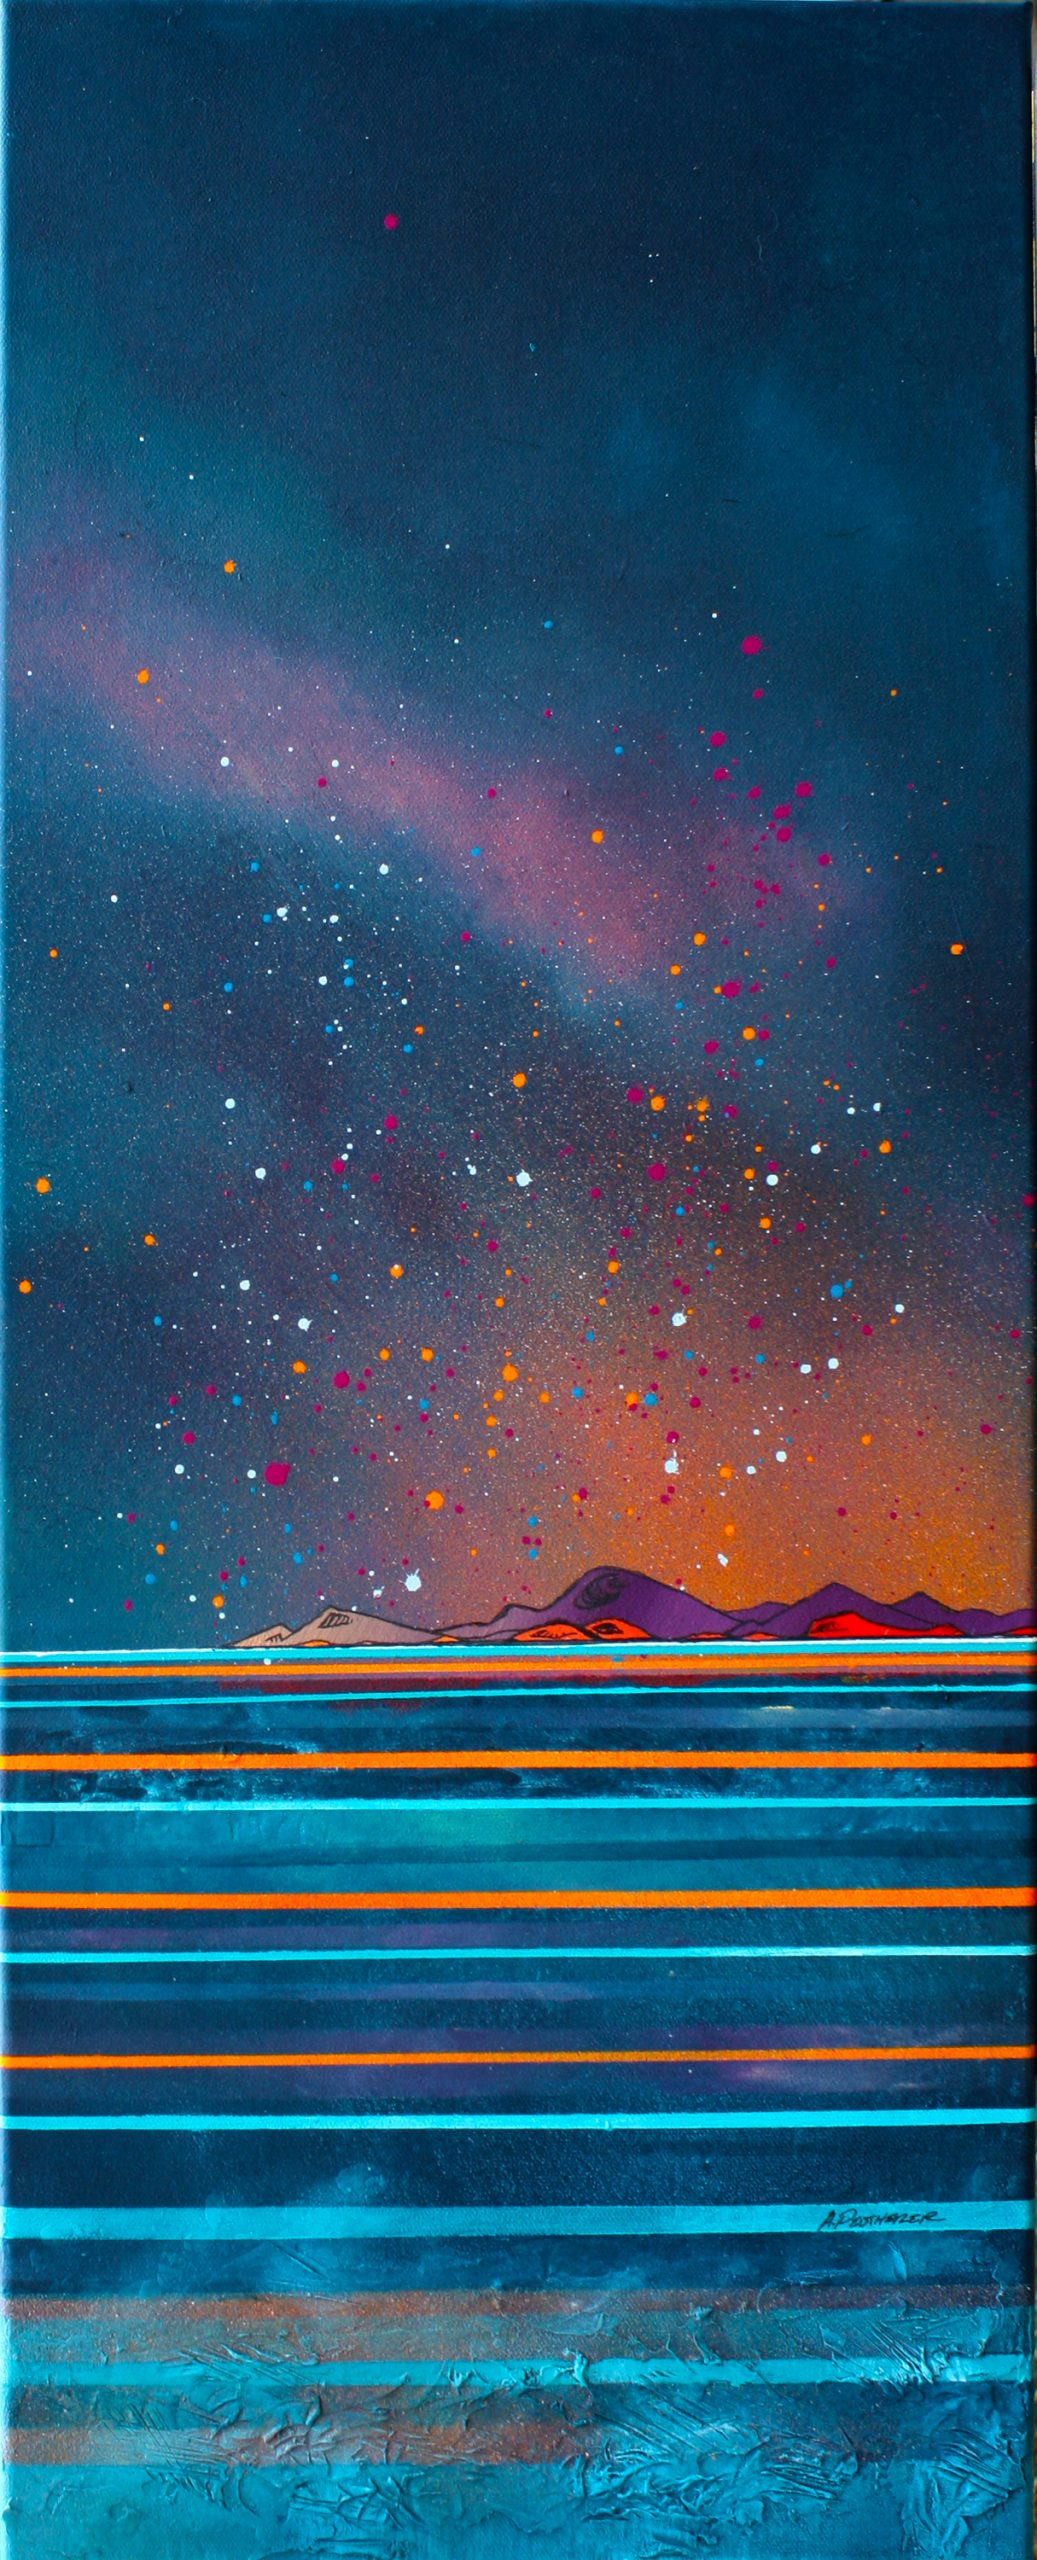 Isle of Skye - Painting & prints, Scotland by Scottish Artist Andy Peutherer